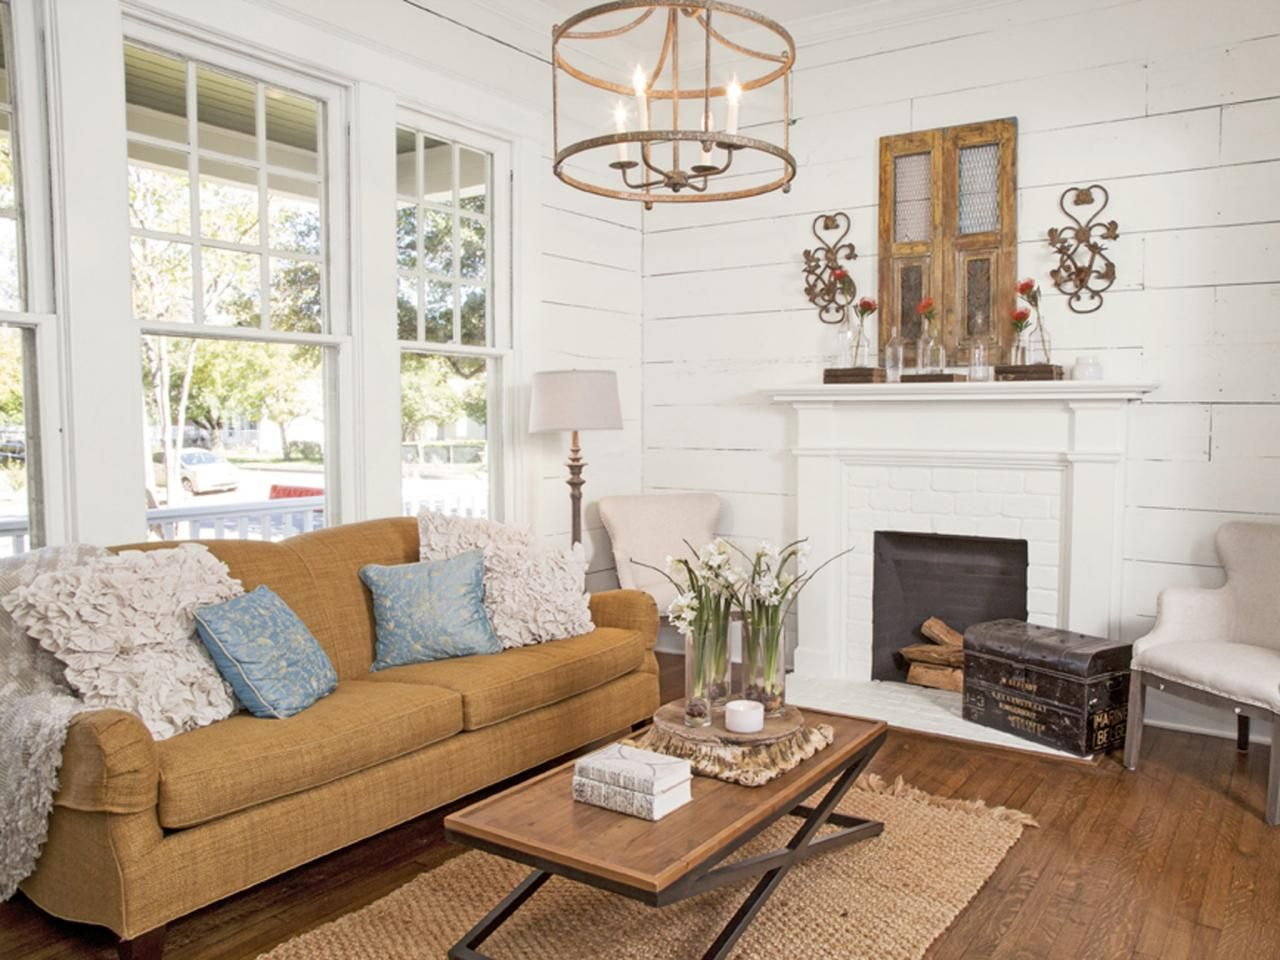 Before and Afters of a Remodeled 1927 Home | Shiplap wood, Hgtv and ...